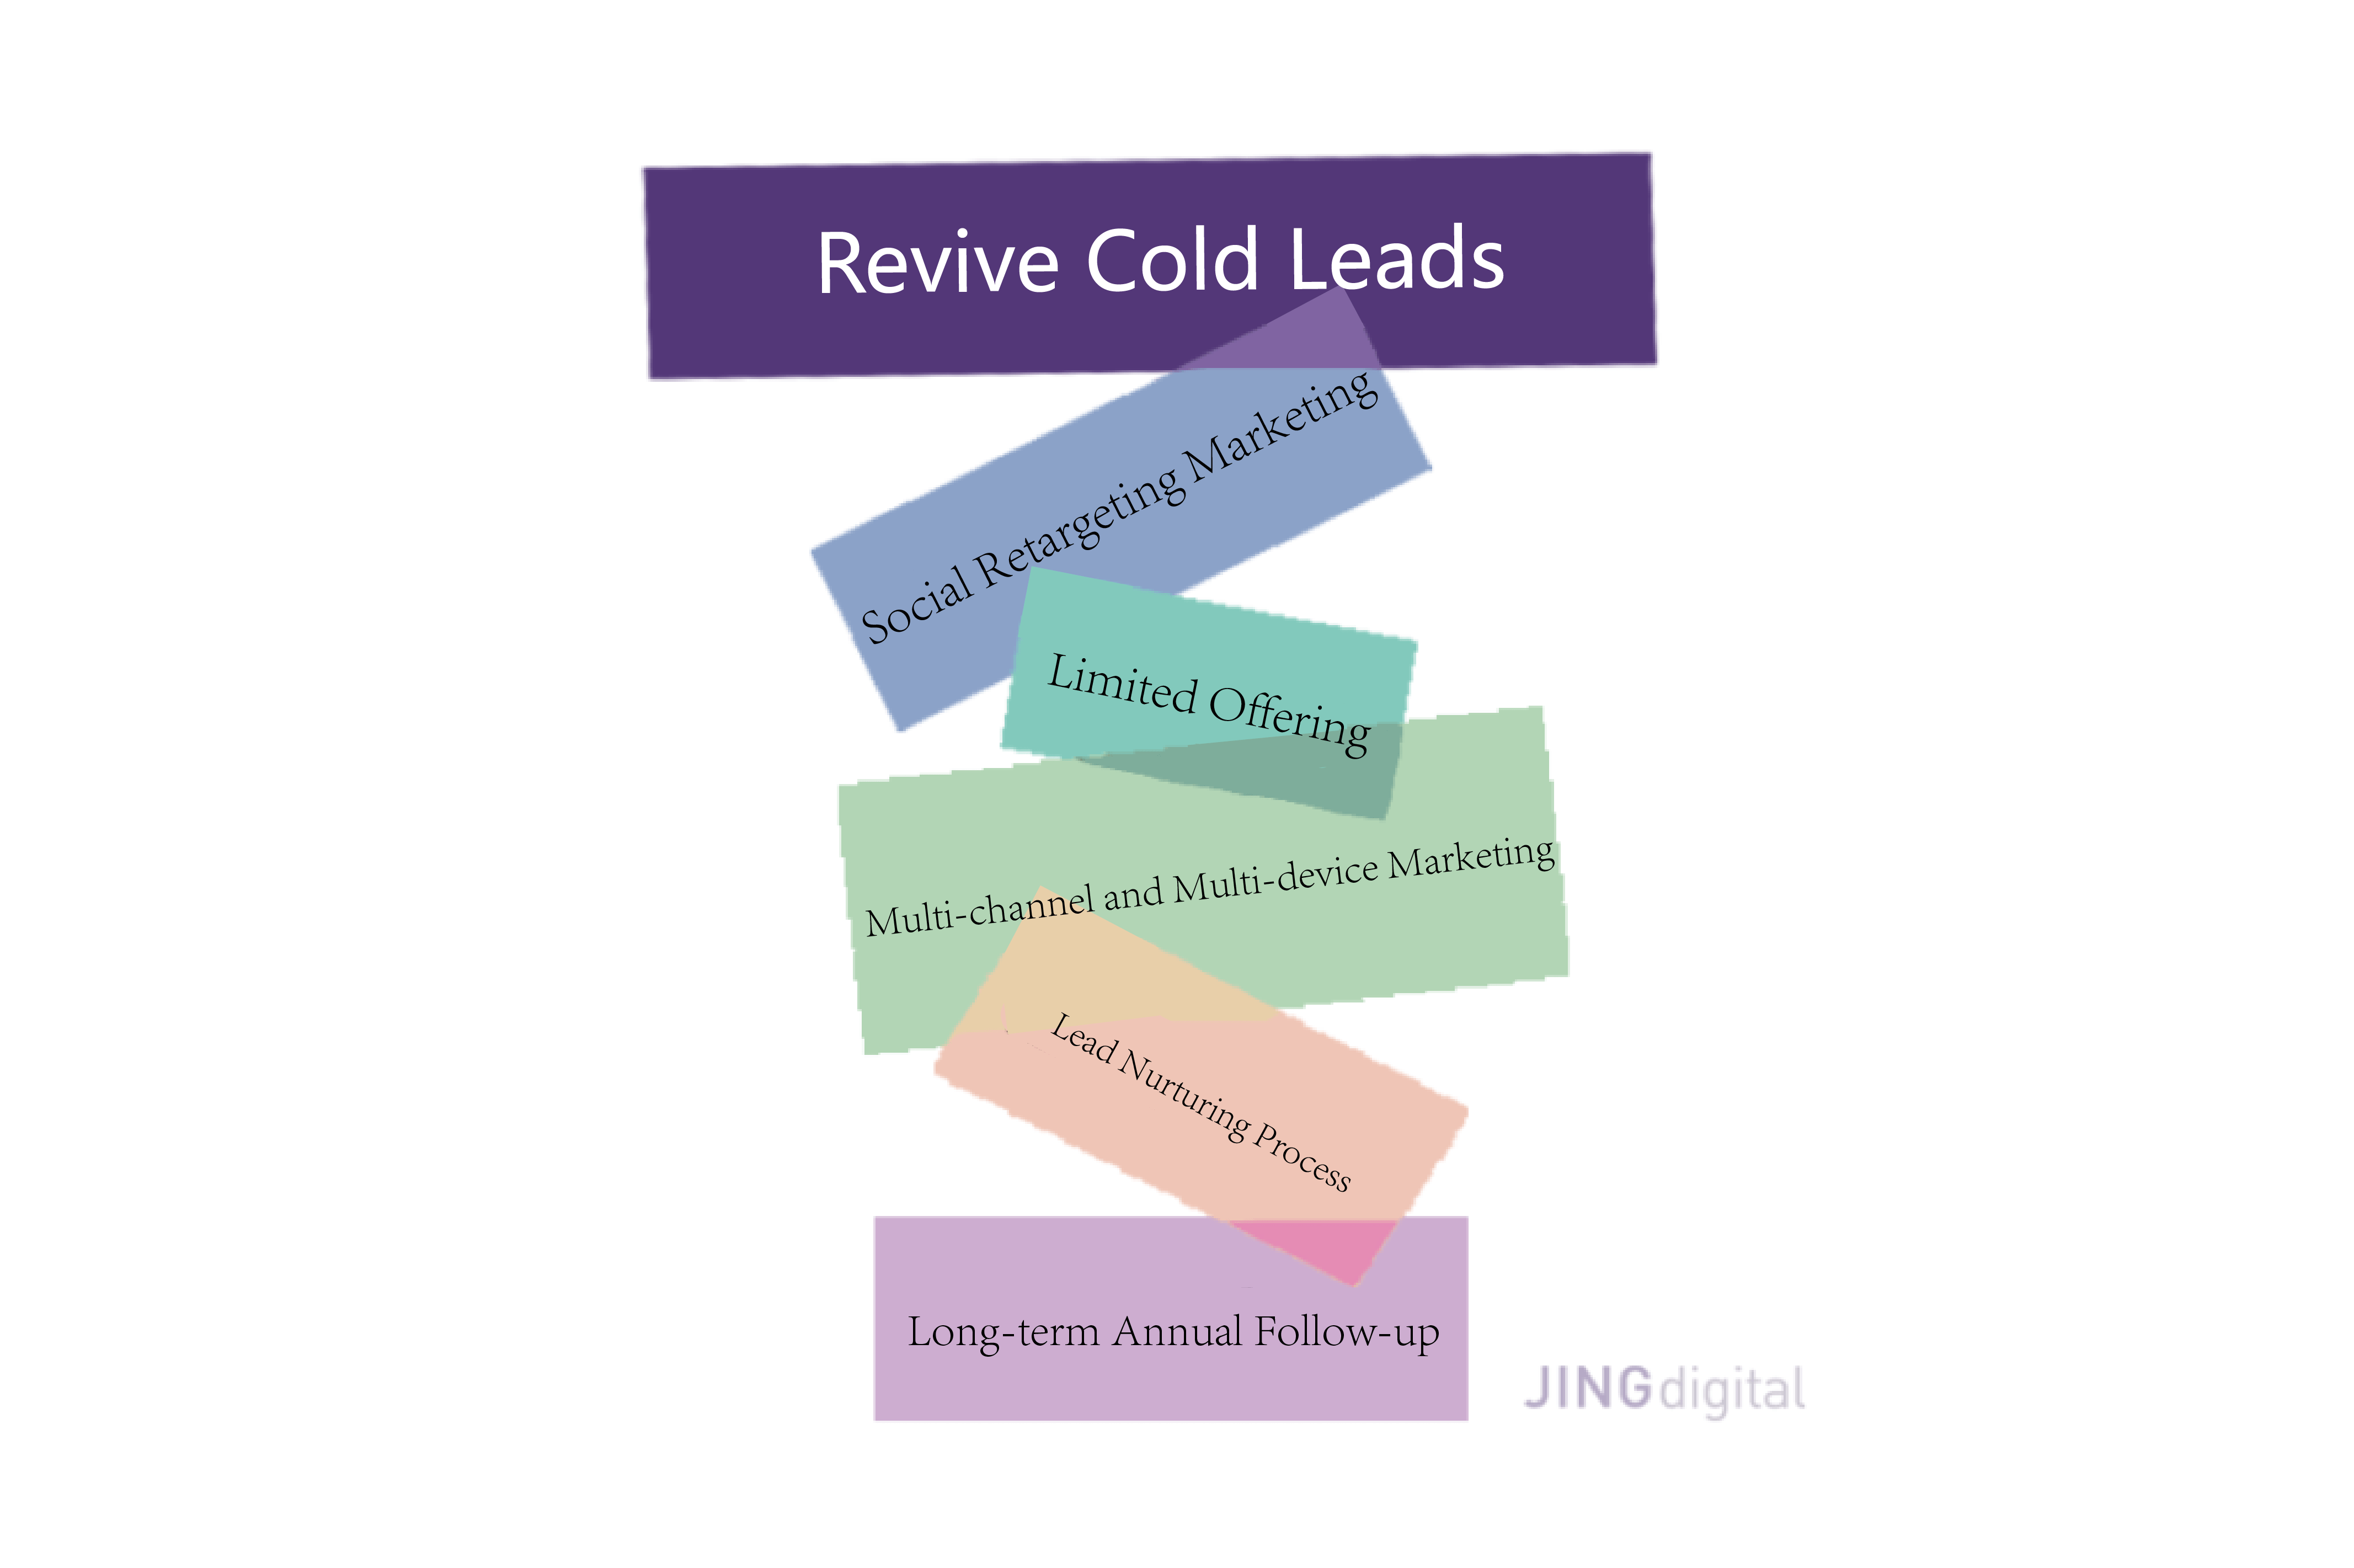 5 strategies to revive cold leads